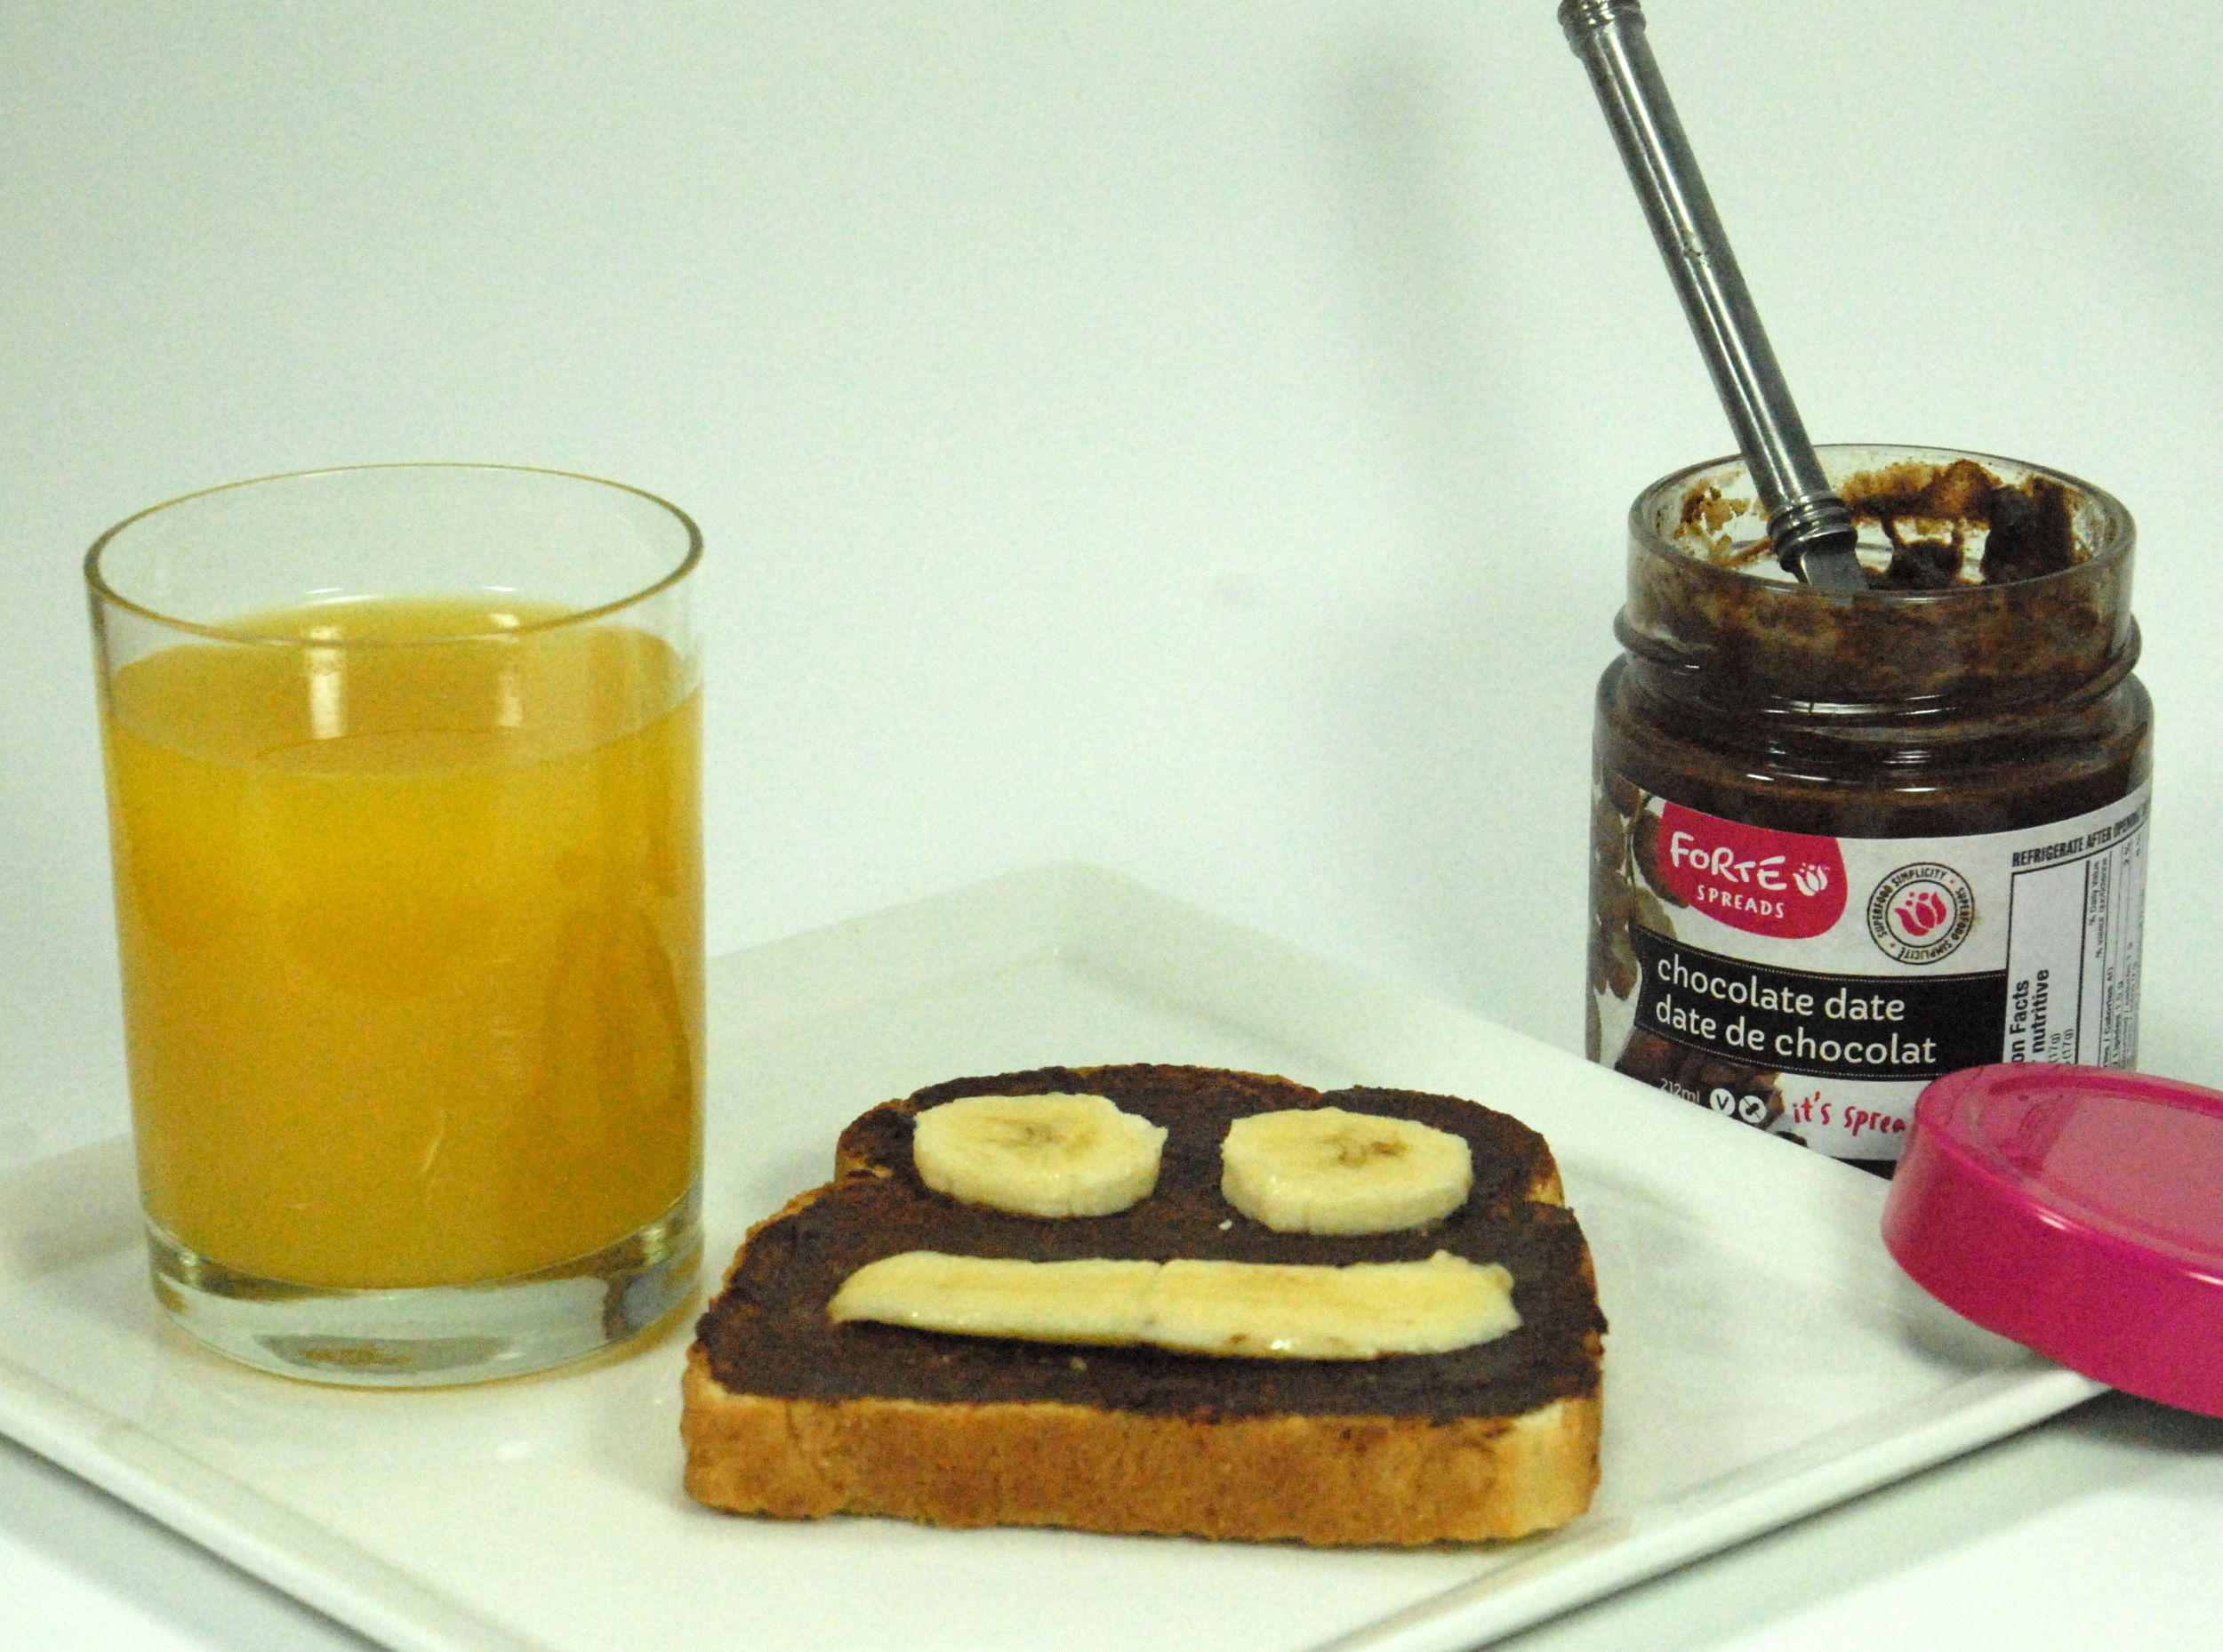 Smiley banana toast with Forte chocolate fruit spread